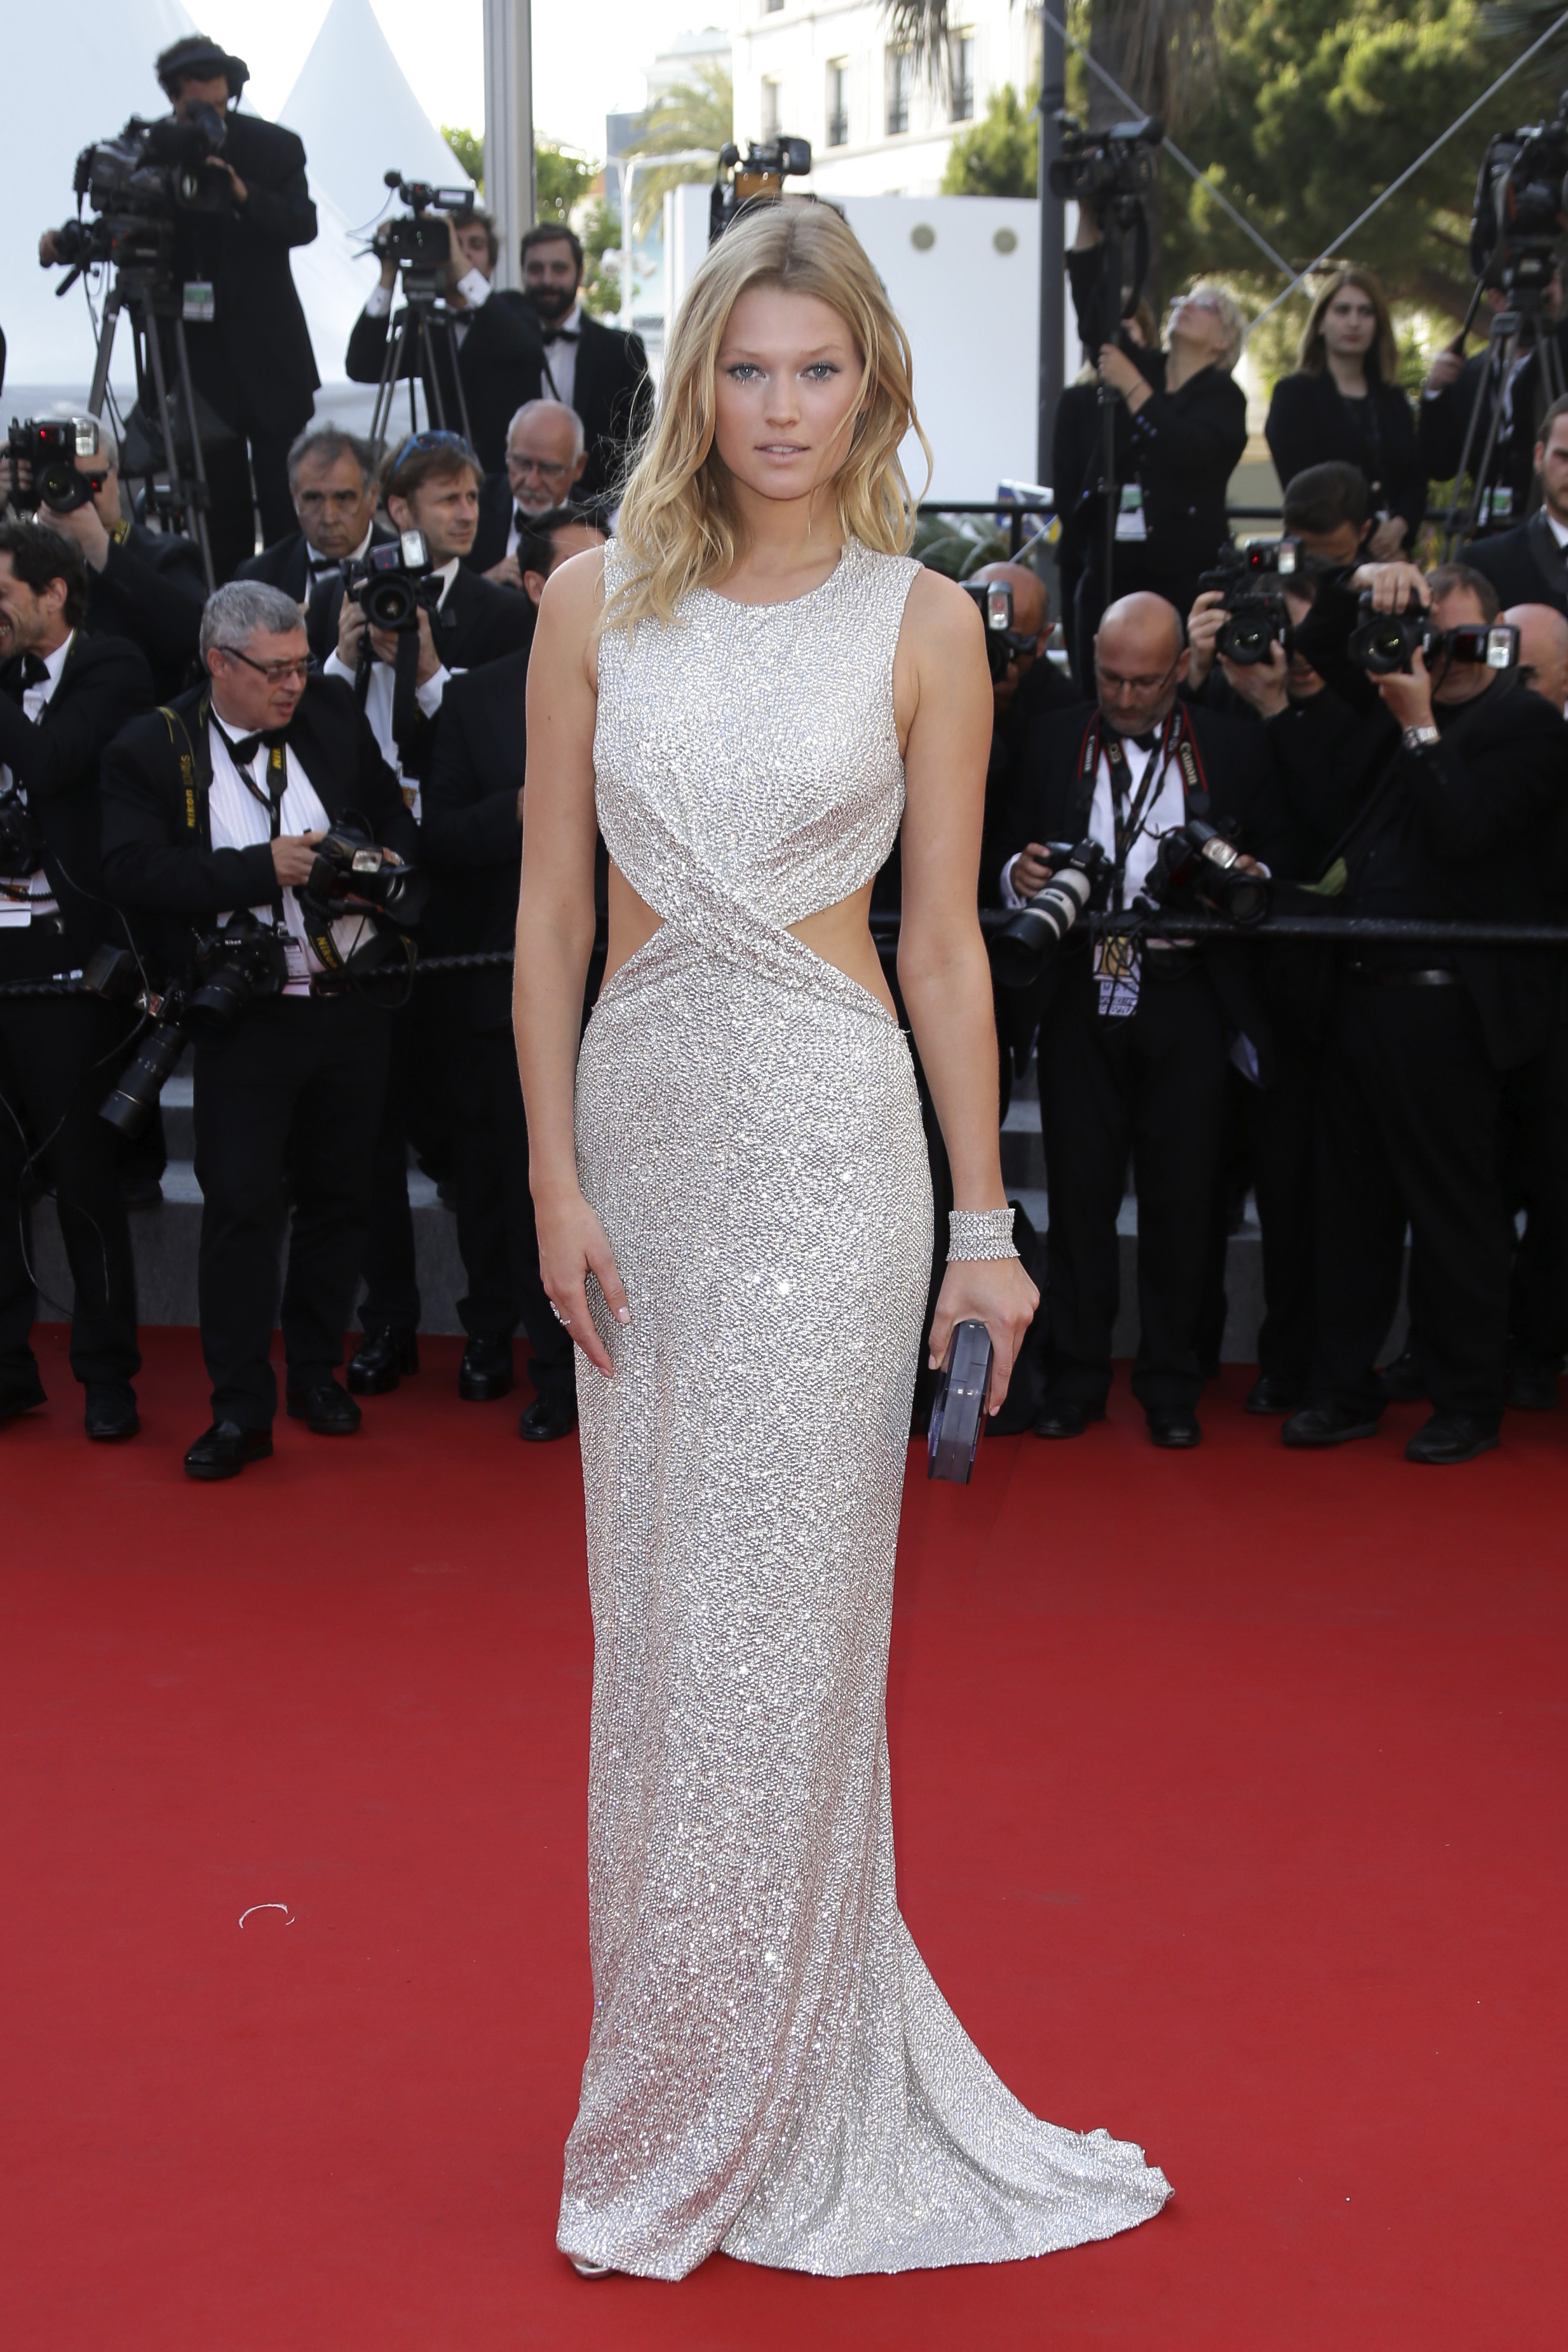 CANNES WATCH: Toni Garrn sparkles in silver on red carpet